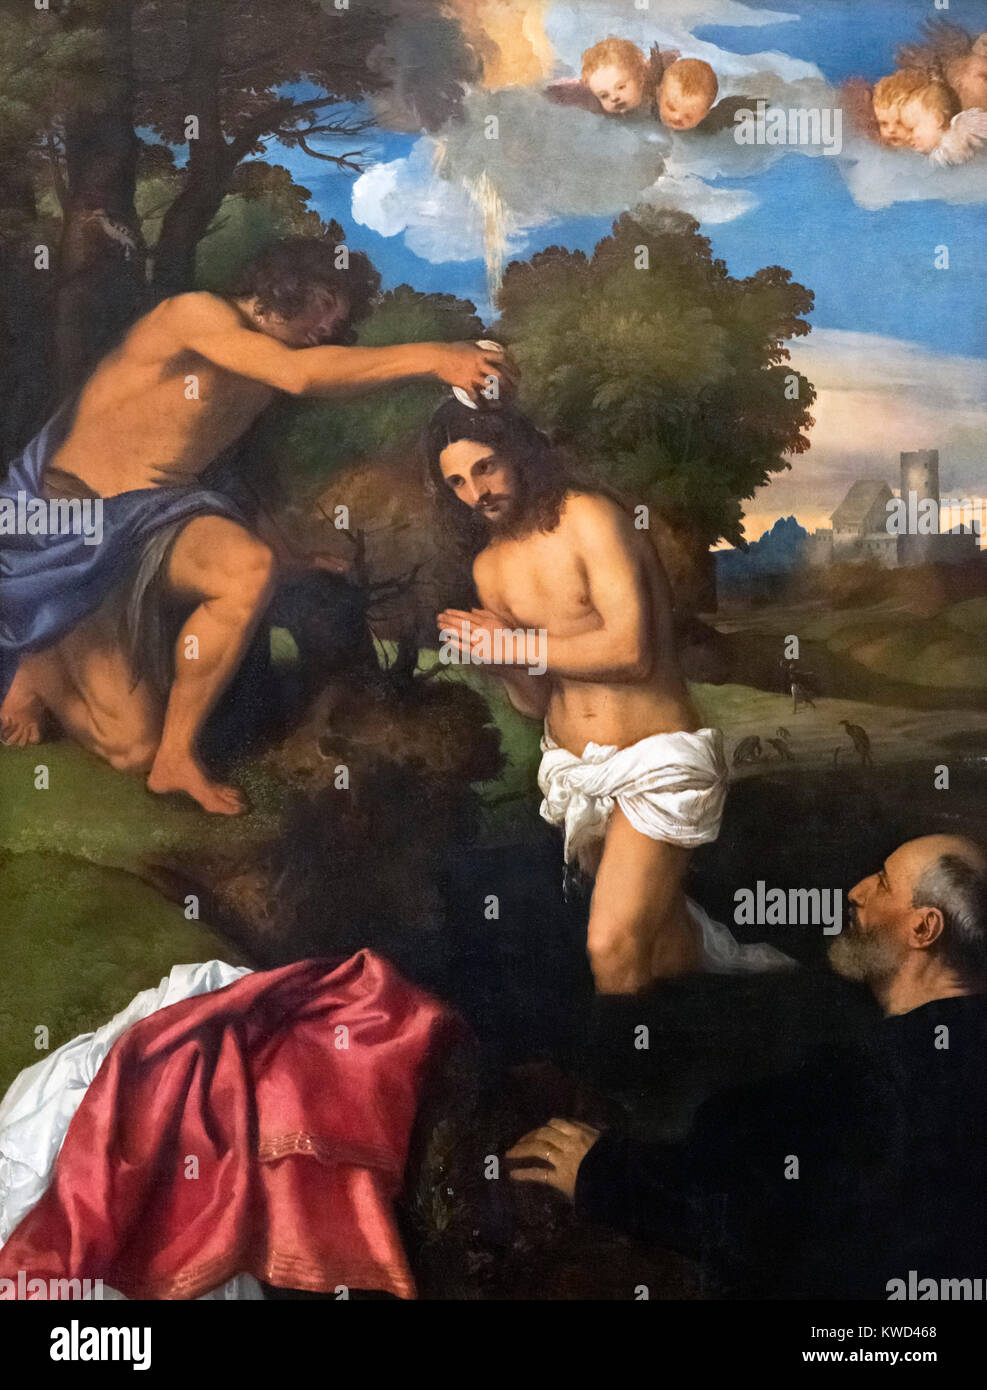 The Baptism of Christ by Tiziano Vecellio (Titian - 1490-1576), oil on panel, c.1512 - Stock Image